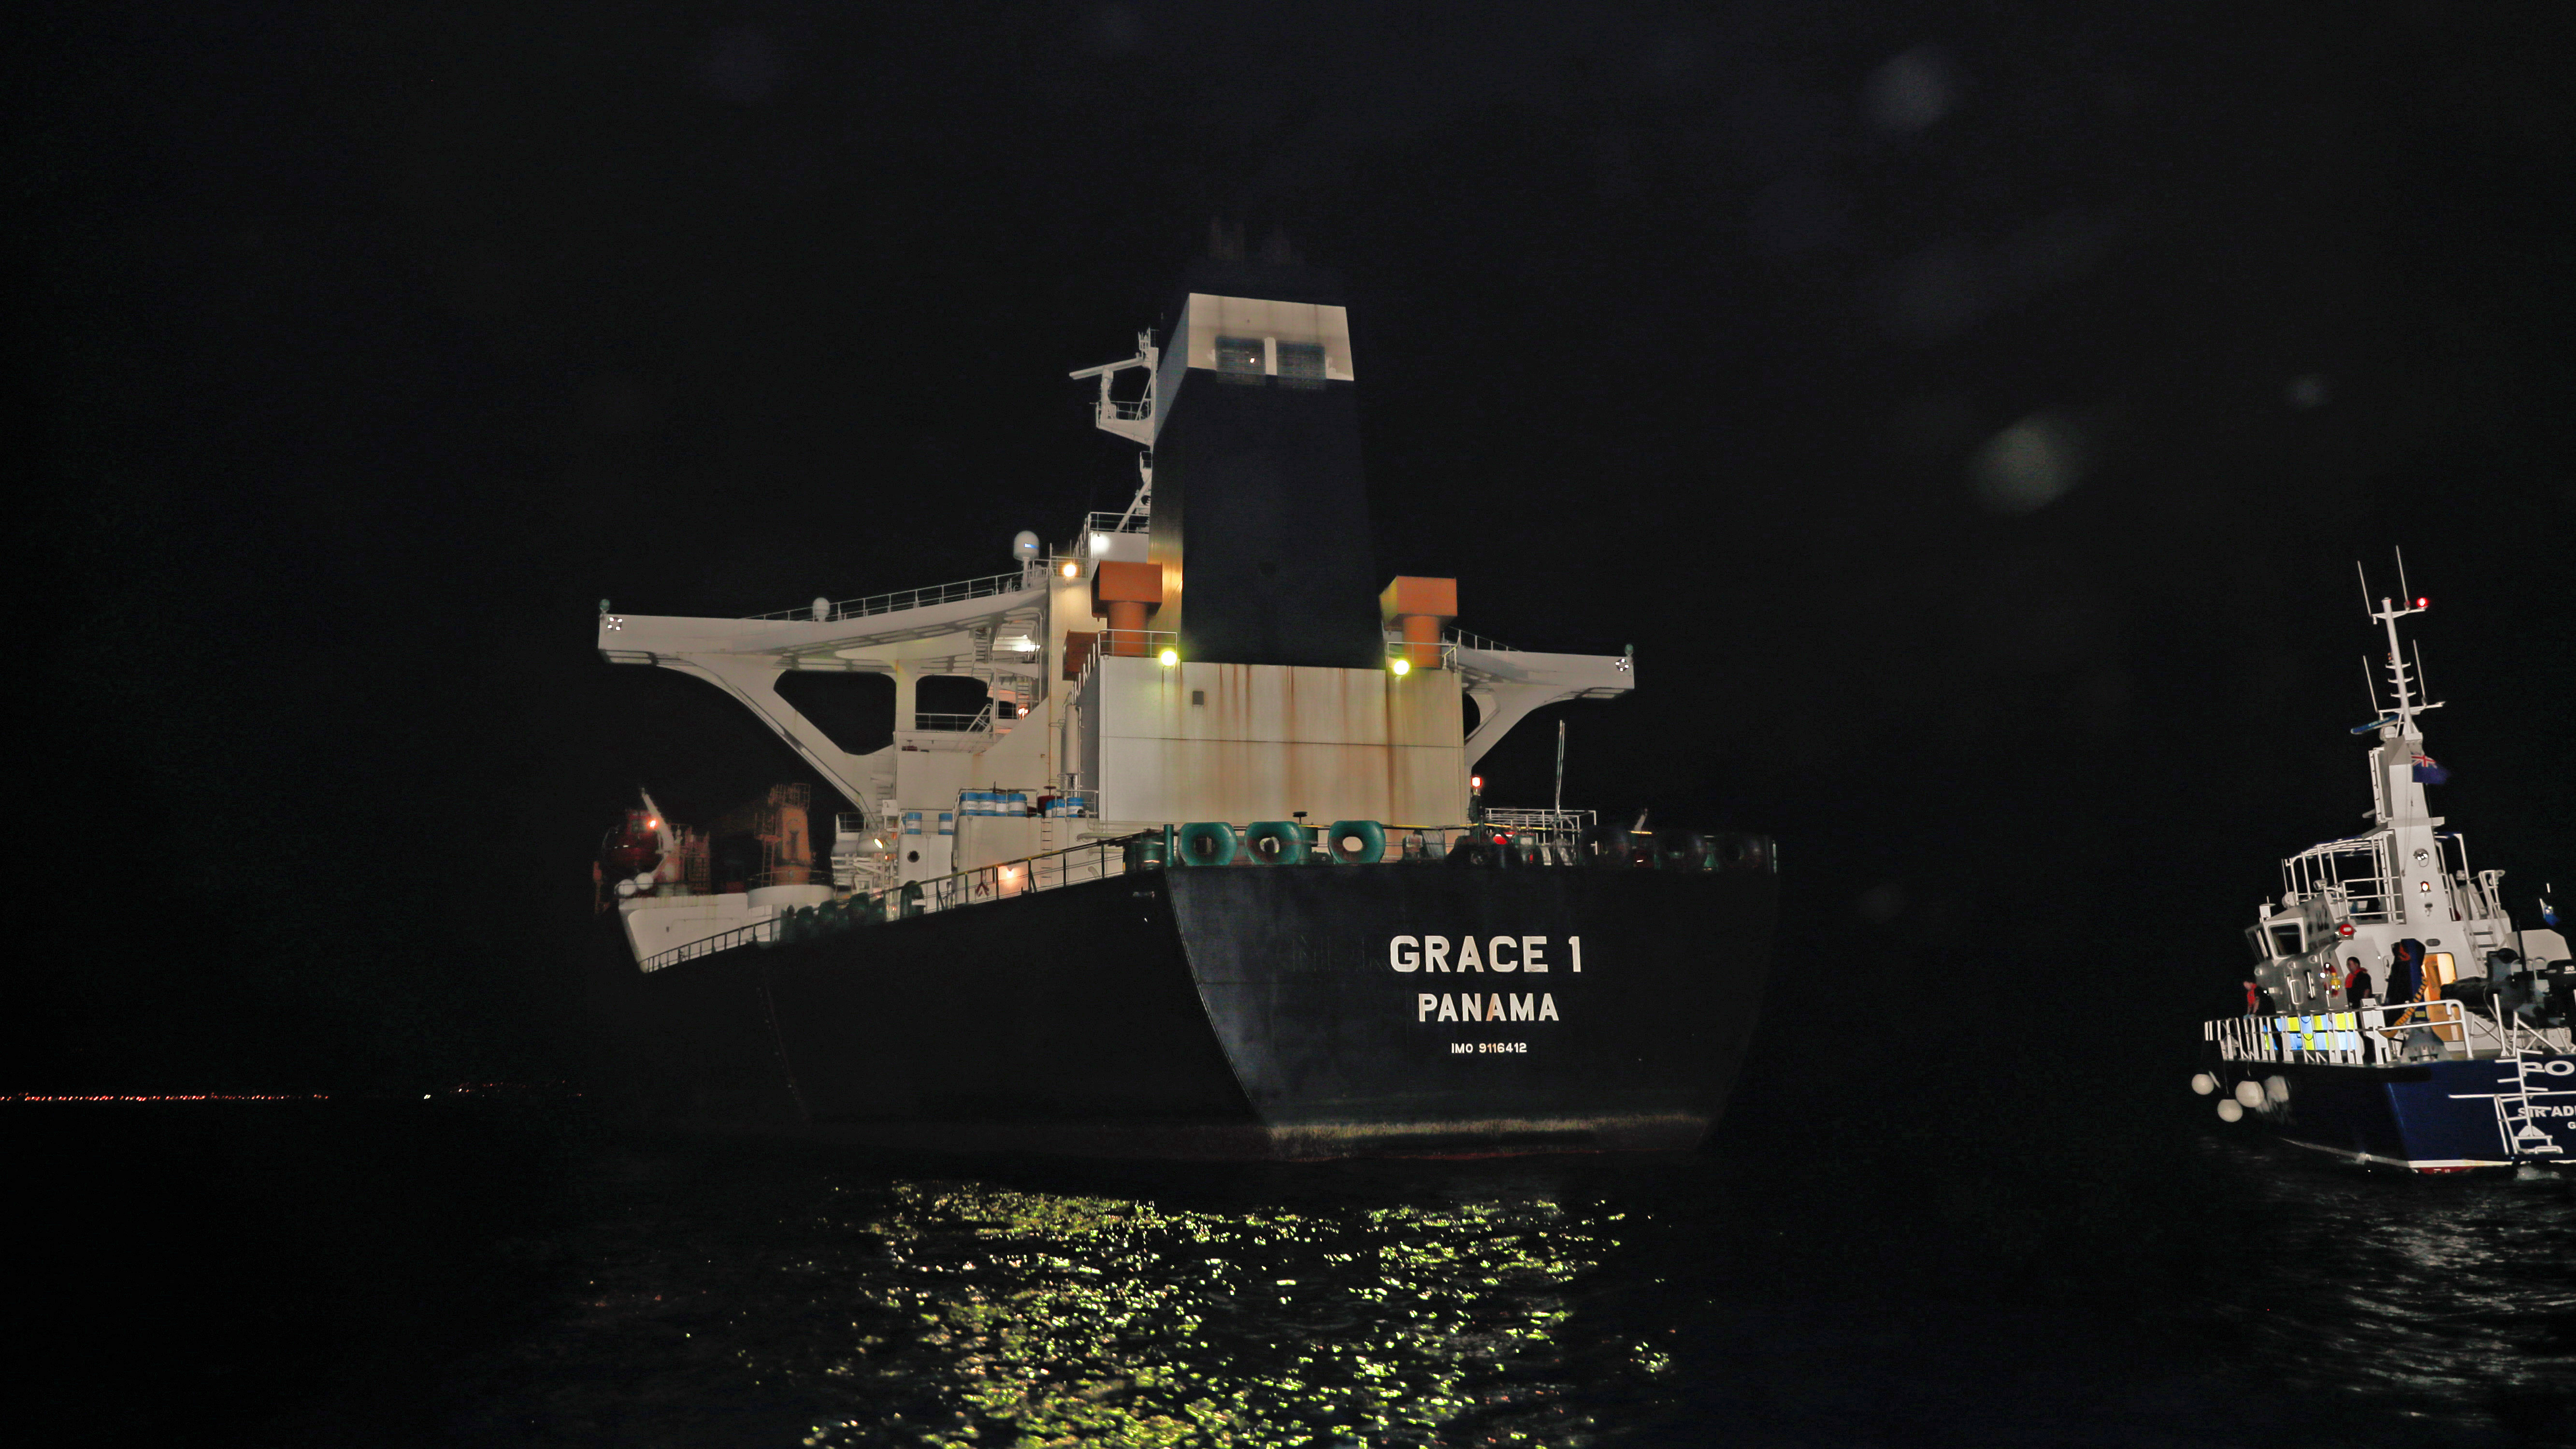 Seized supertanker was full to capacity with crude